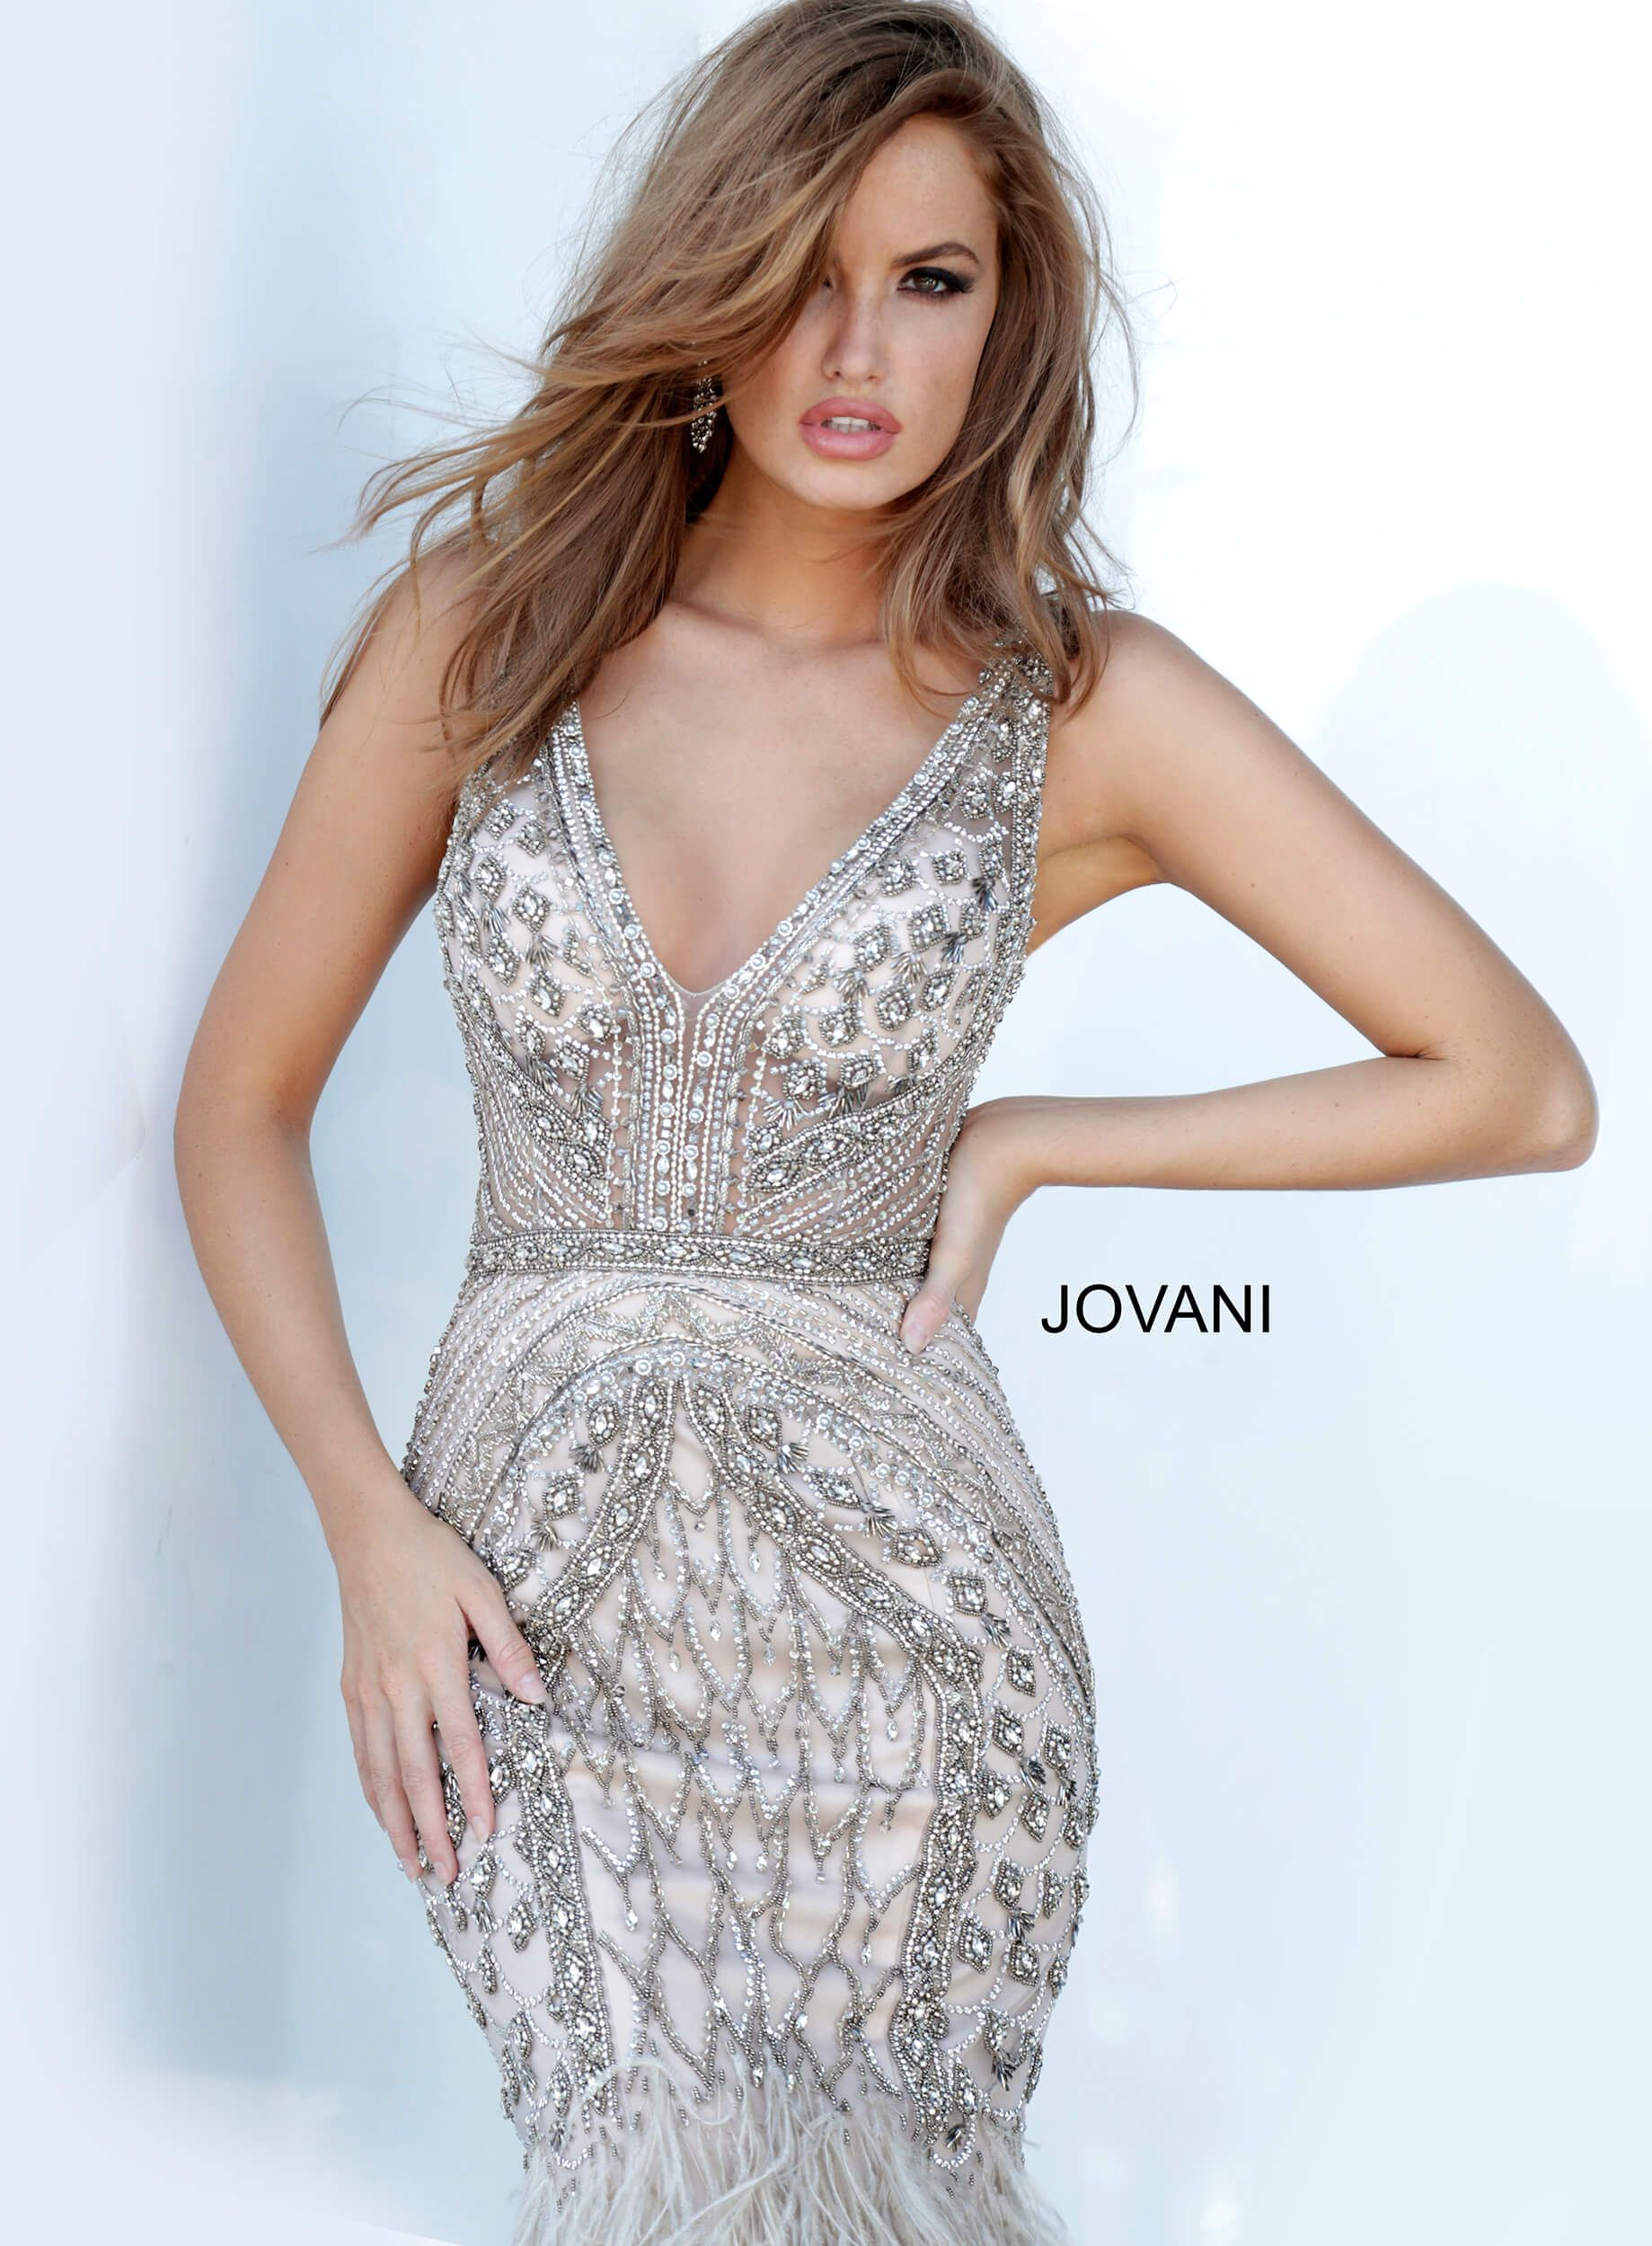 Jovani 02798 Silver Beaded Mermaid Dress With Feather In 2020 Long Sleeve Evening Gowns Jovani Evening Dress Sparkly Prom Dresses